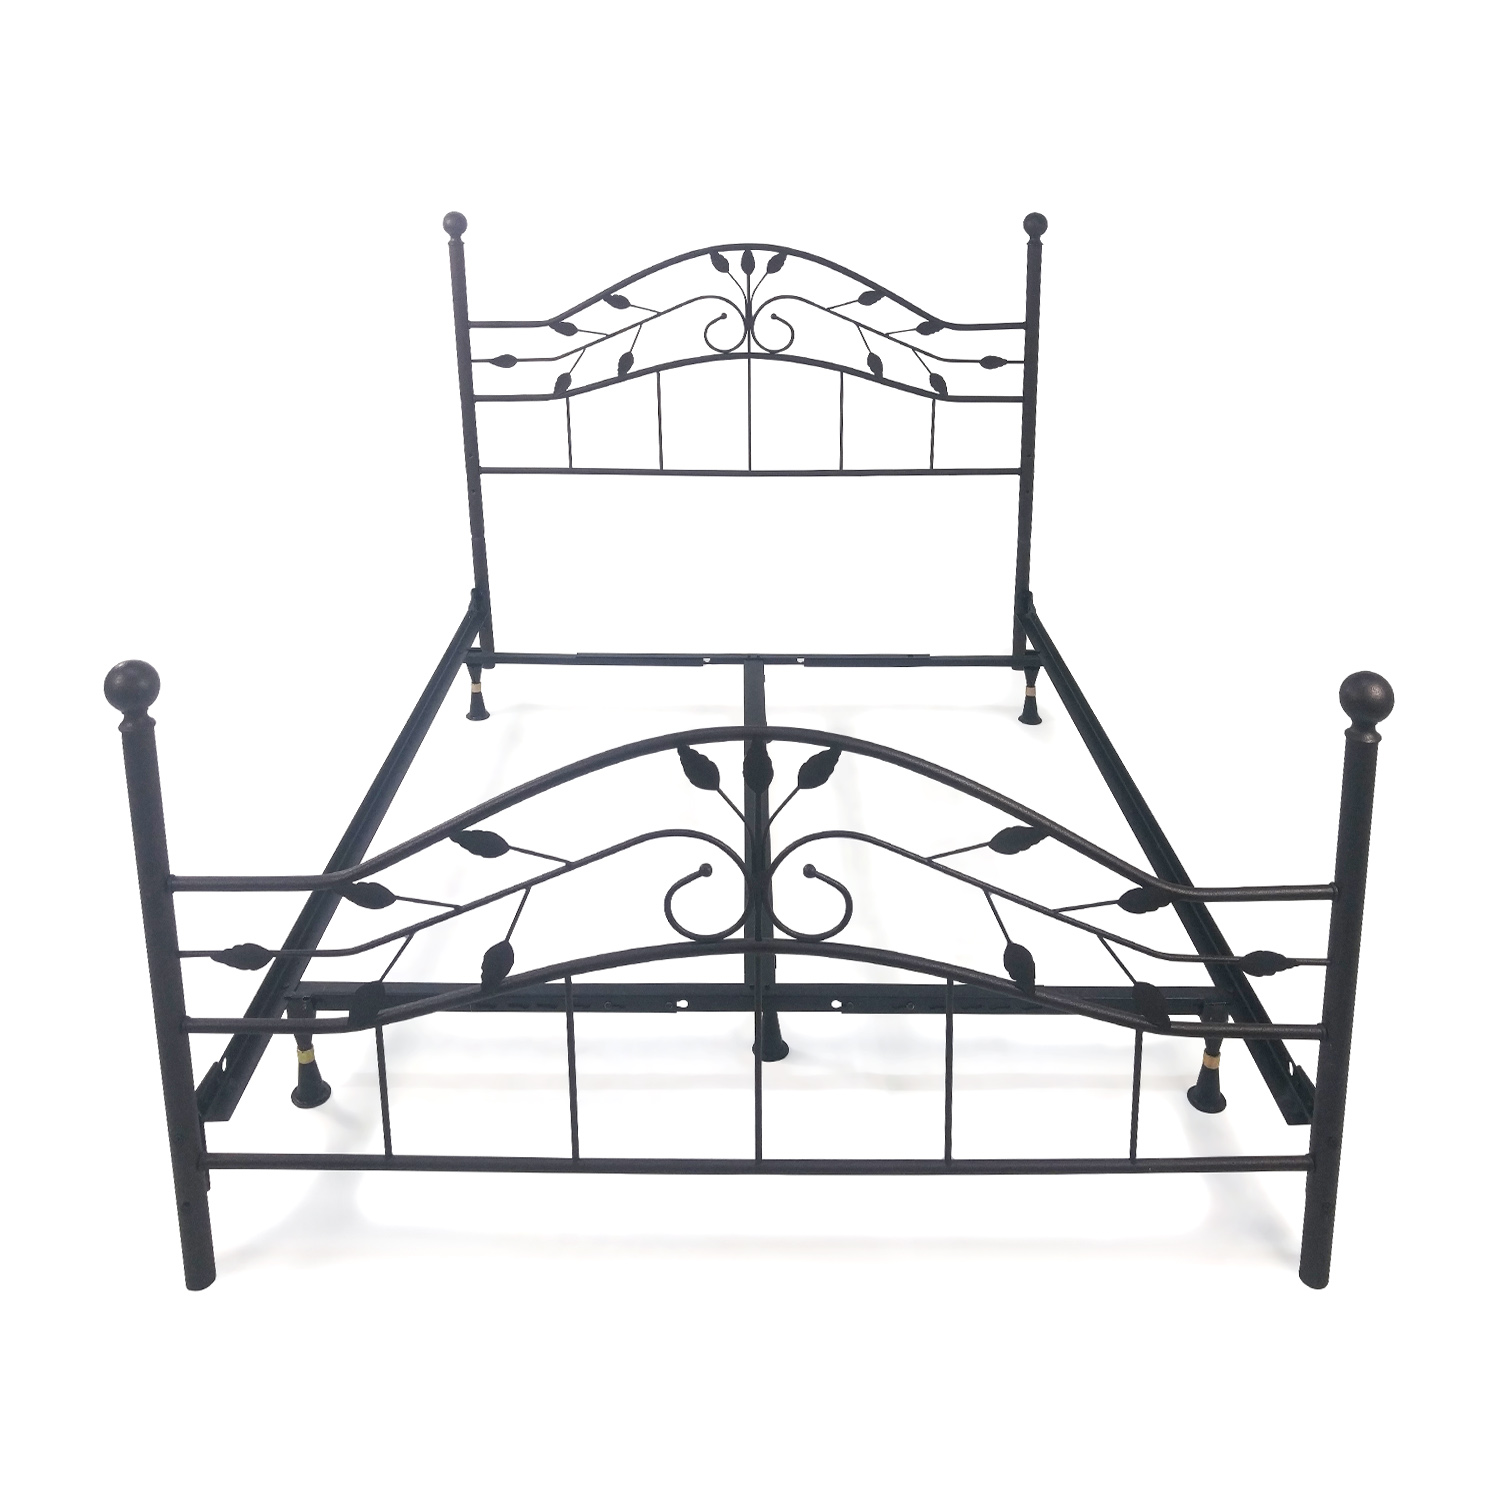 queen metal bed frame second hand - Used Bed Frames